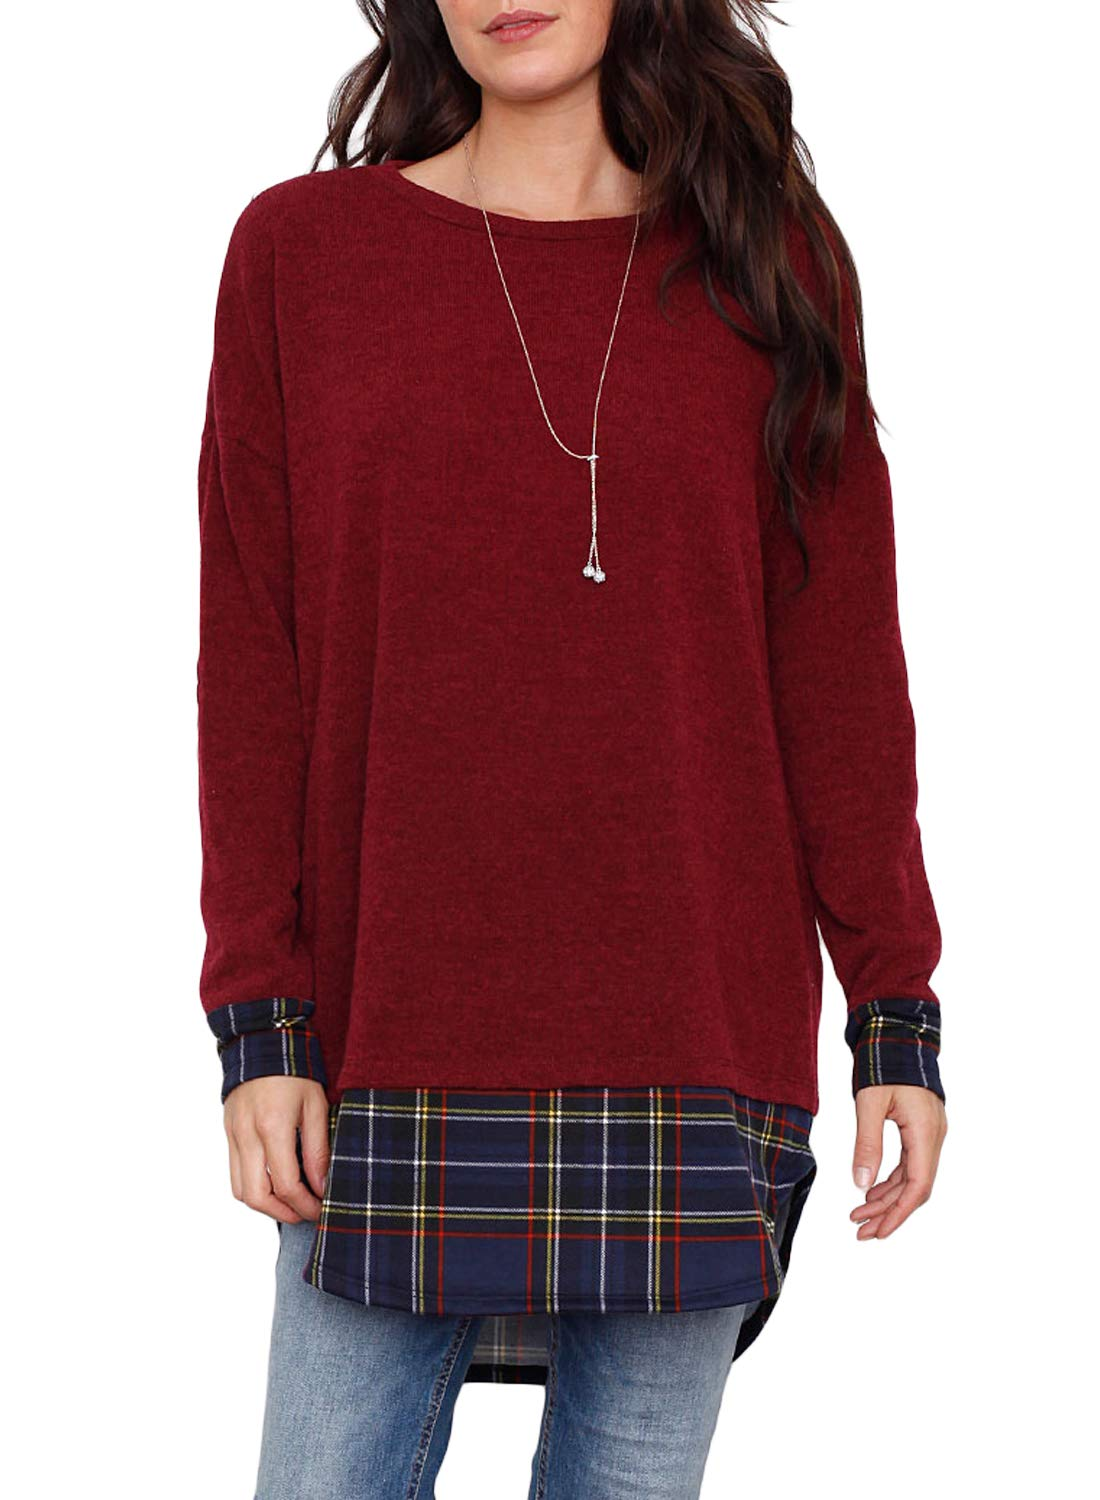 FARYSAYS Women's Casual Long Sleeve Crewneck Loose Plaid Patchwork Tunic Top Blouse T-Shirt Red XX-Large